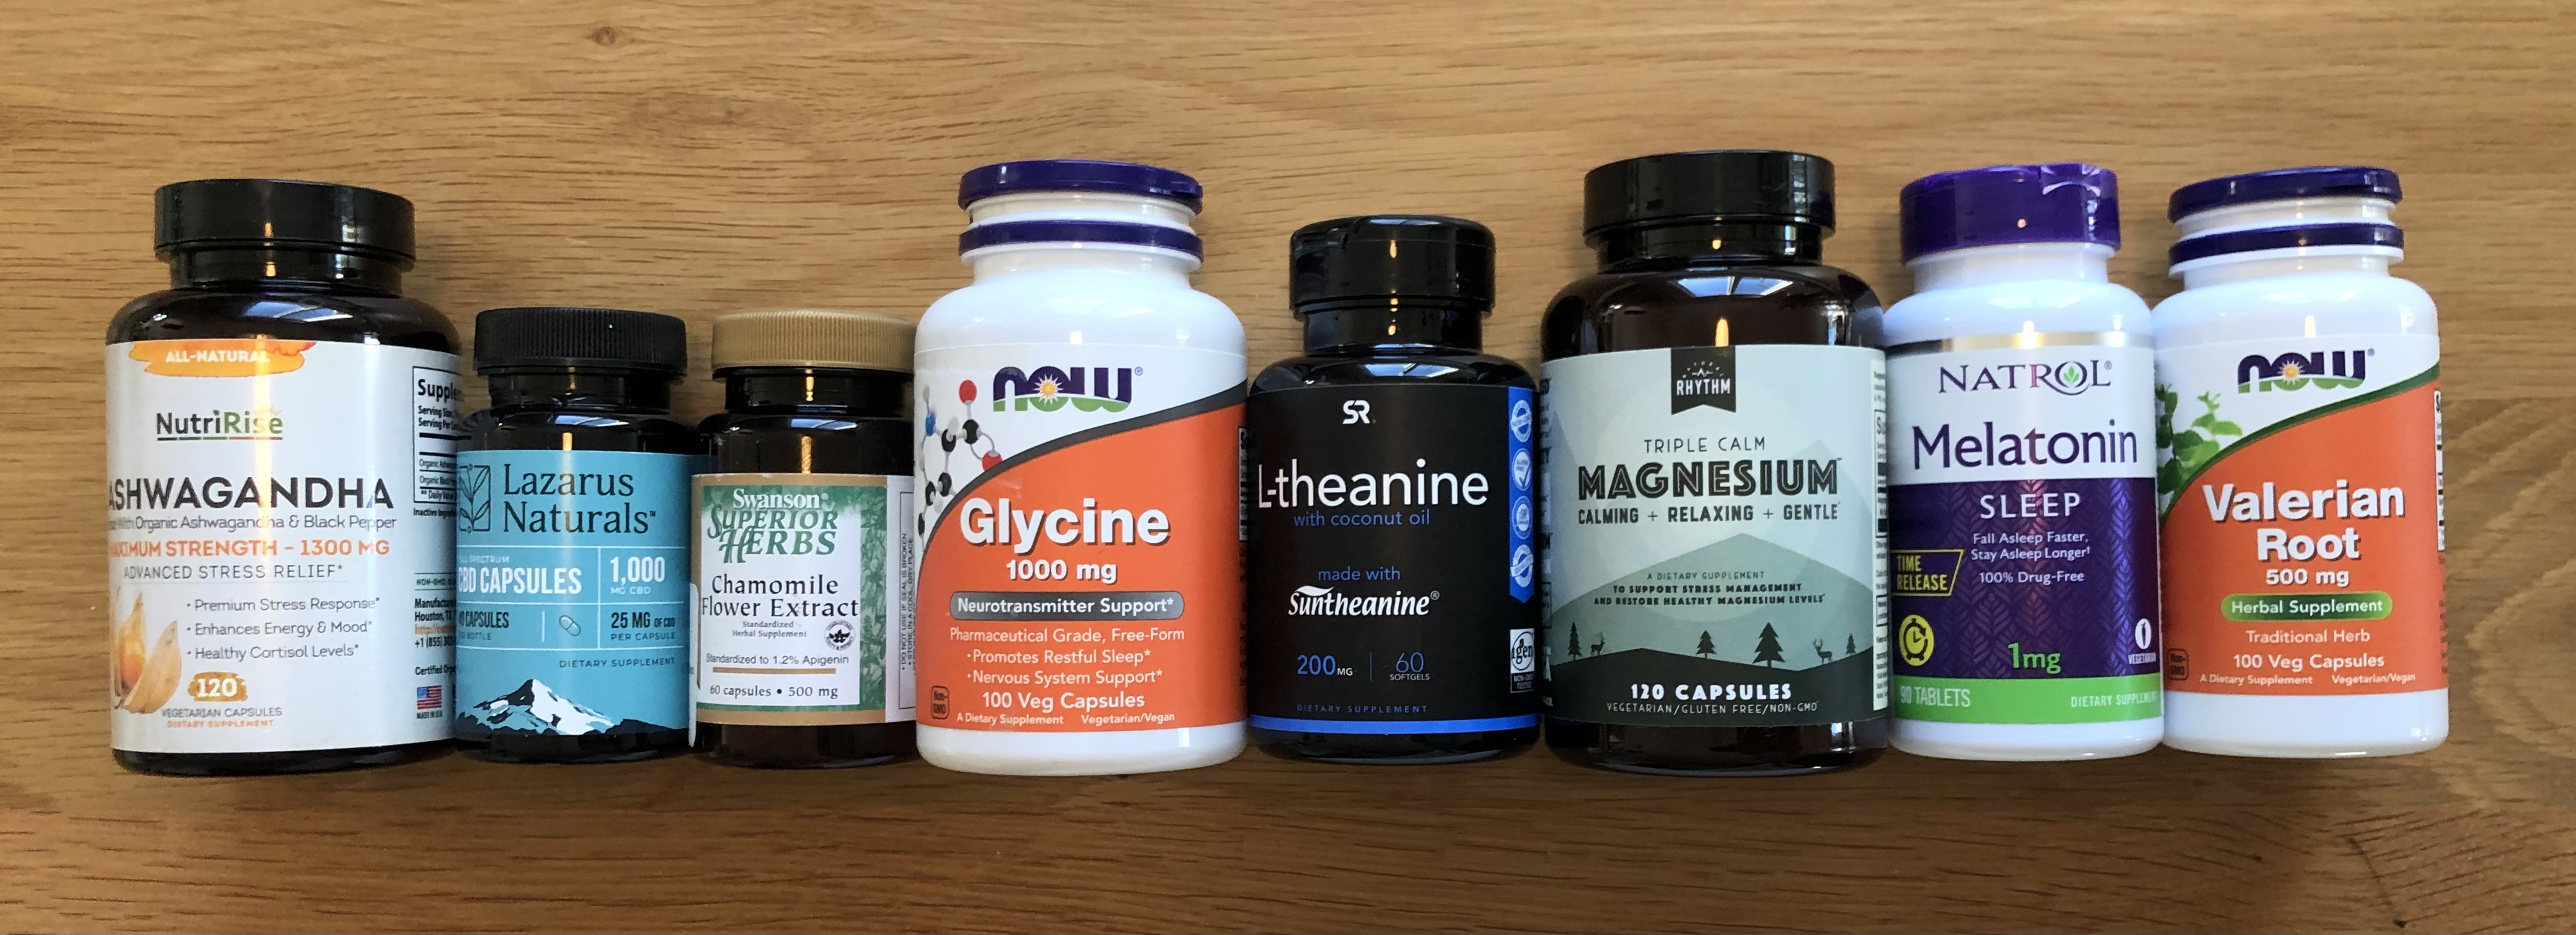 My 4-Month Experiment with 8 Natural Sleep Aids